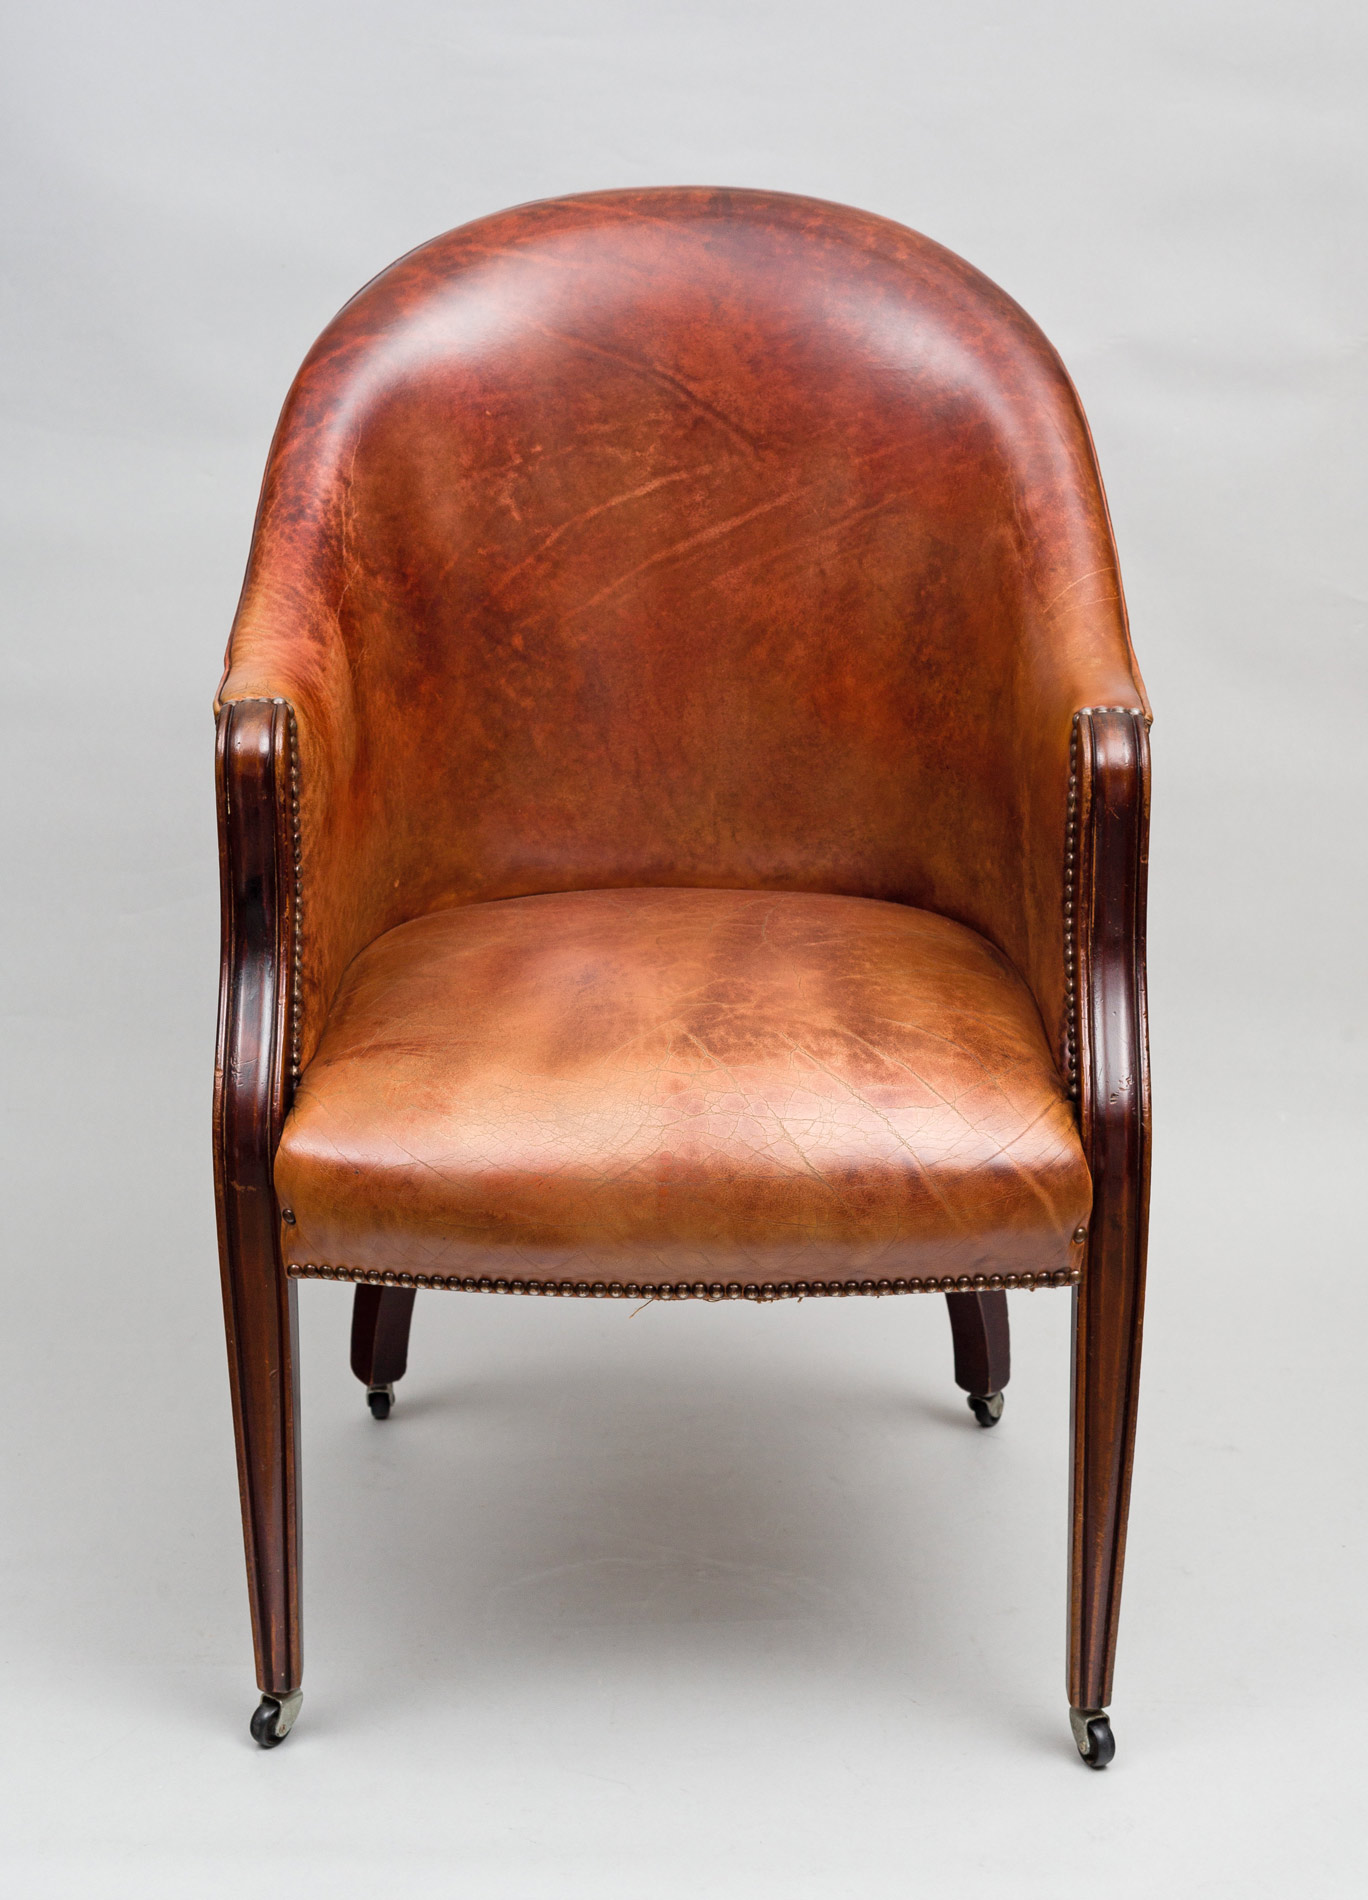 Edwardian Leather Tub Chair · Edwardian Leather Tub Chair ...